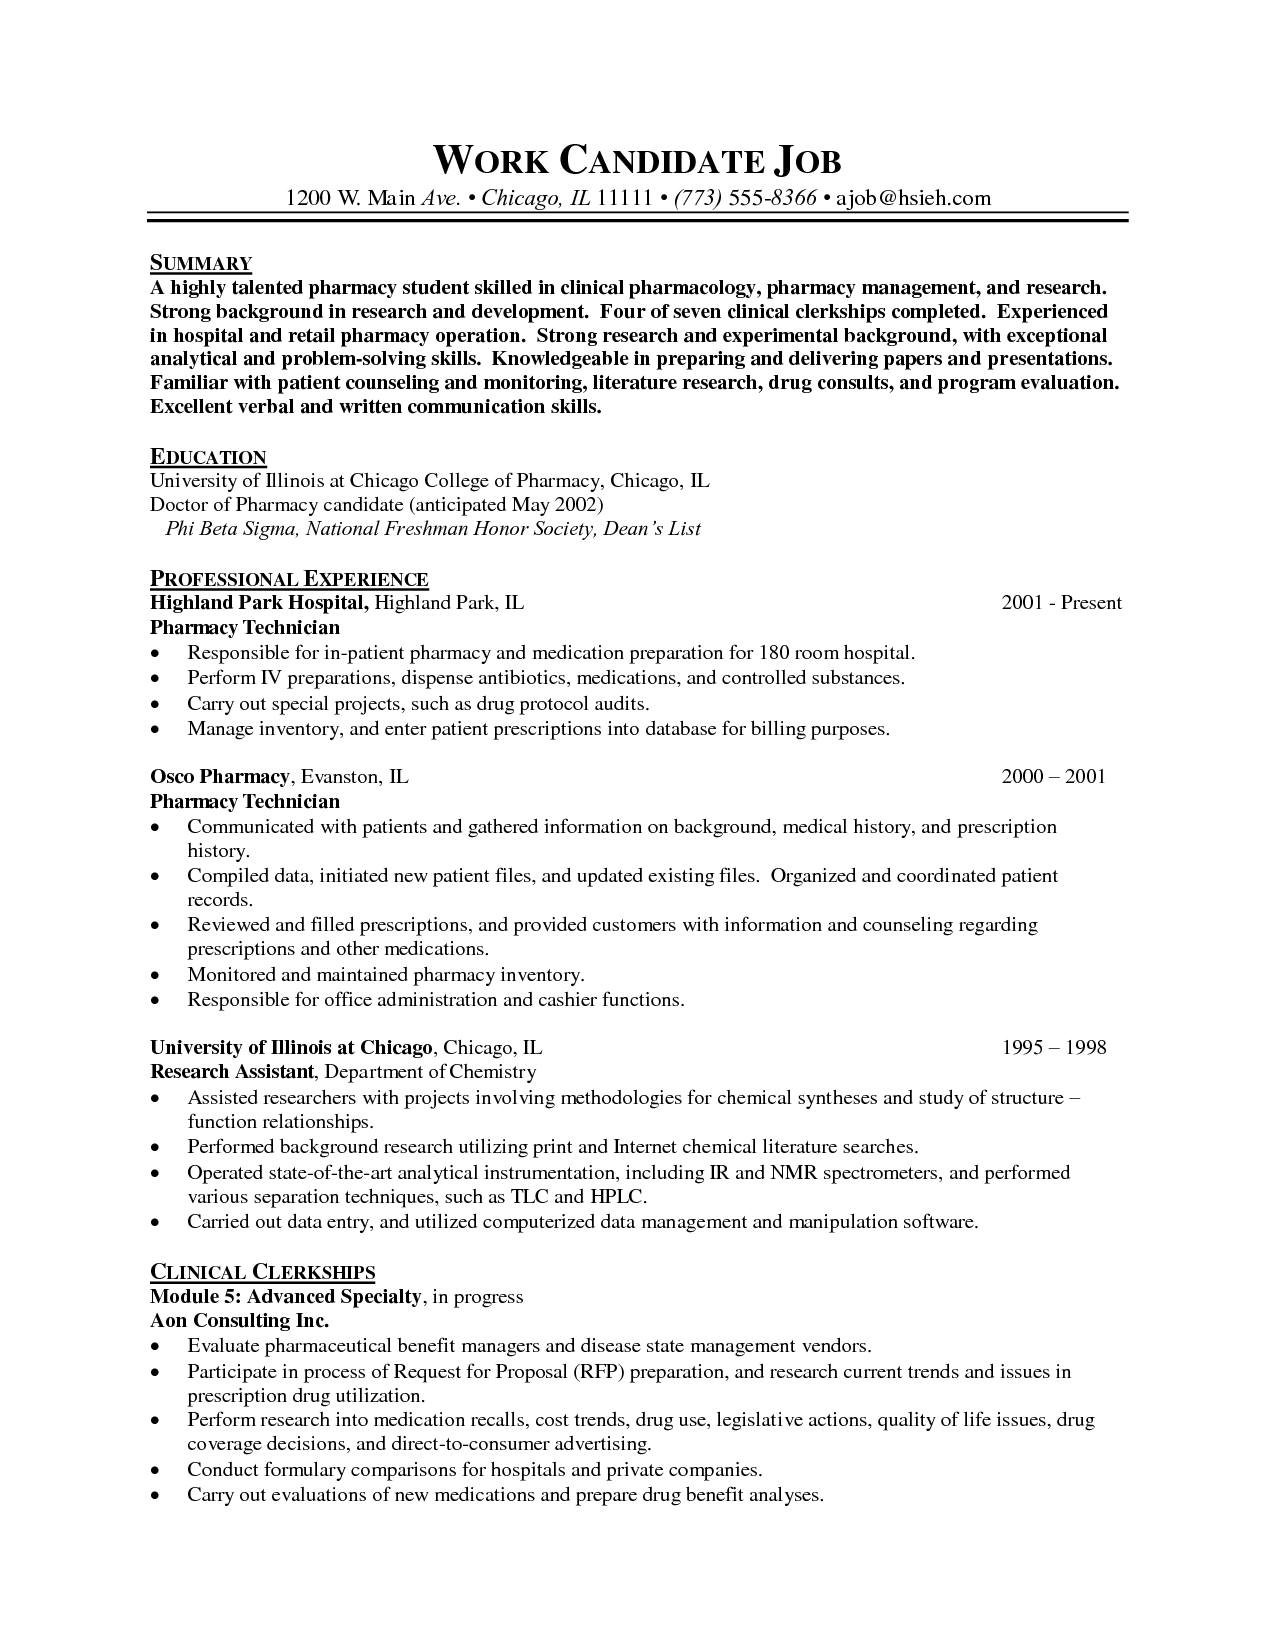 Professional Resume Cover Letter Sample | Get instant, risk free ...